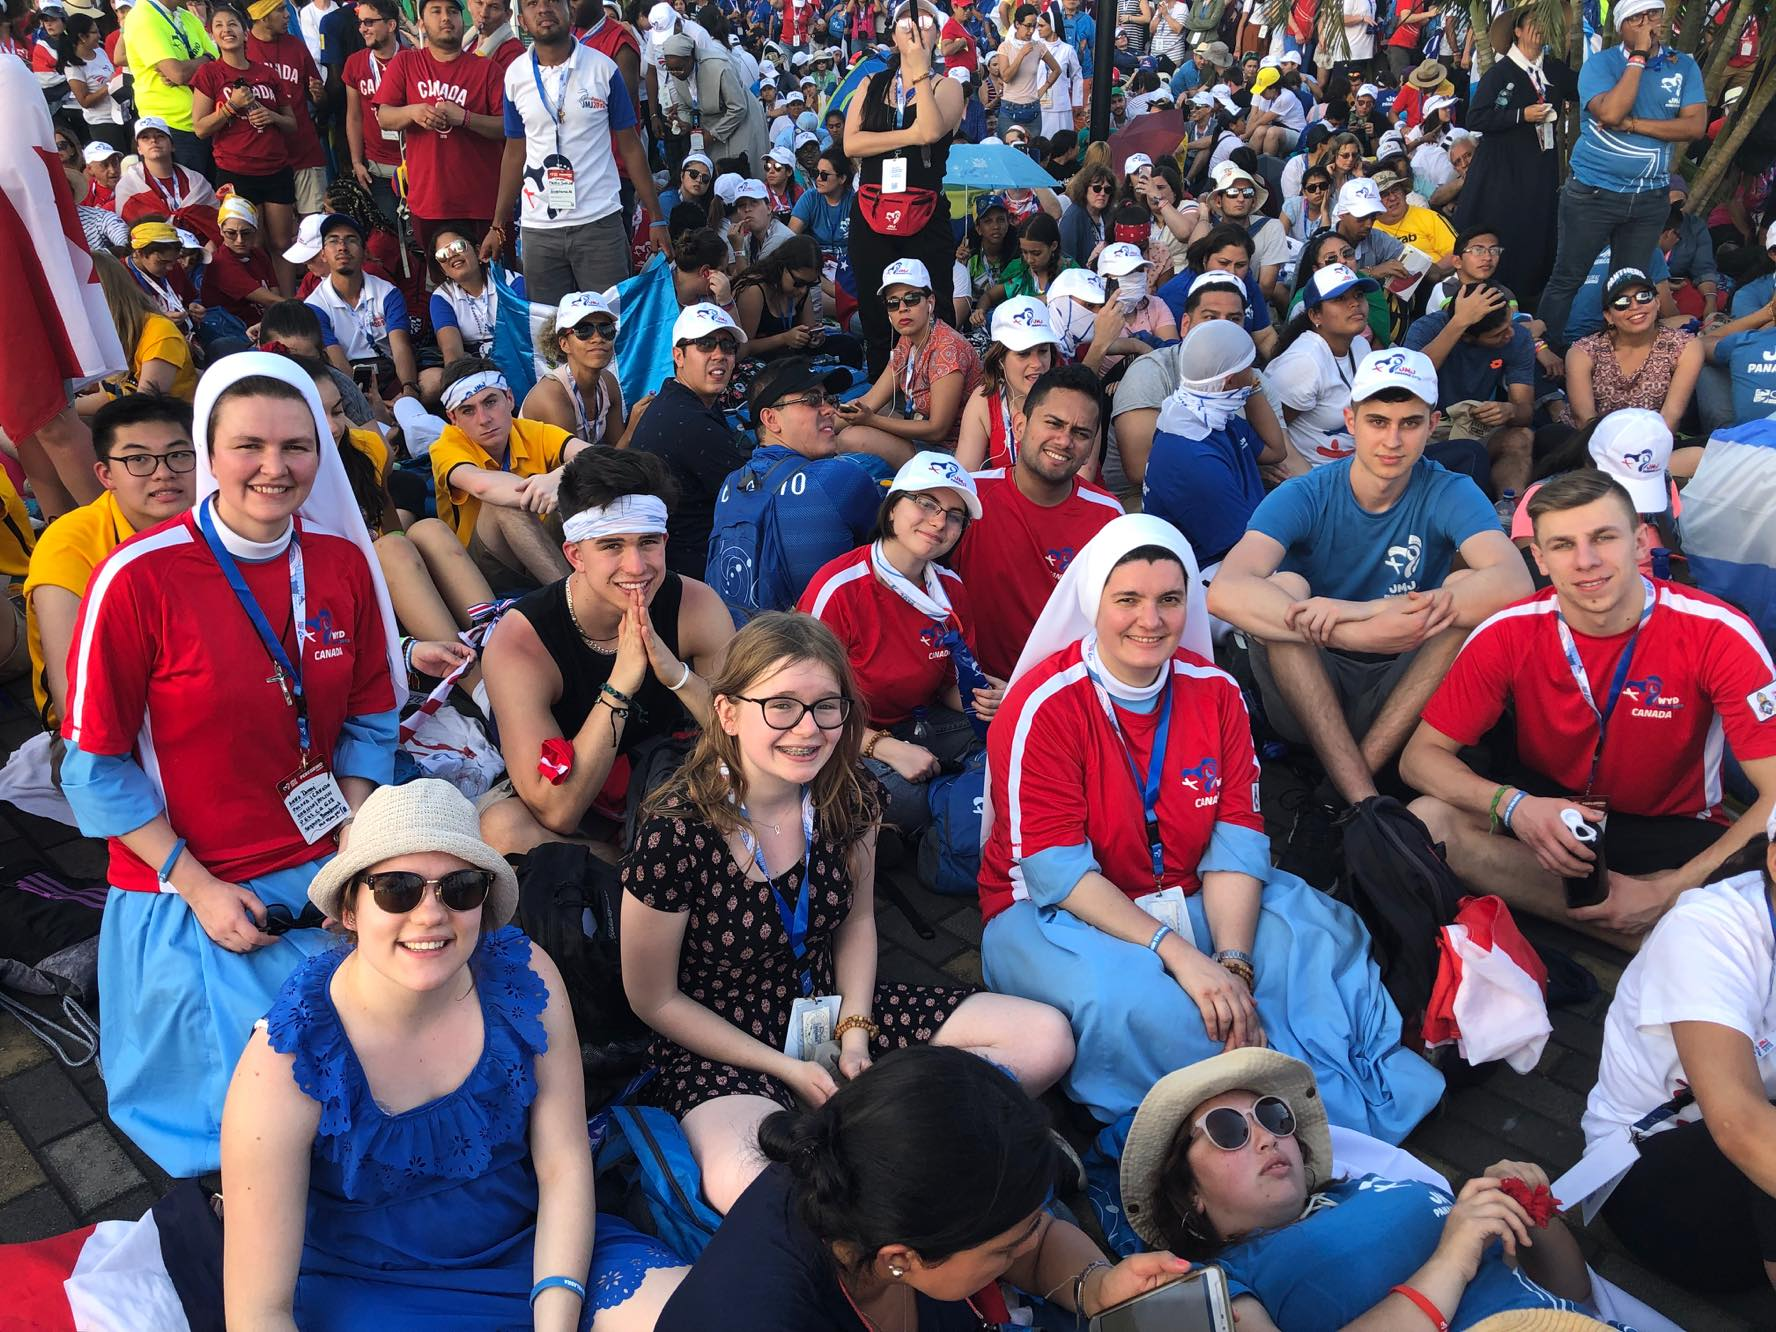 Local World Youth Day pilgrims among those lining the streets to